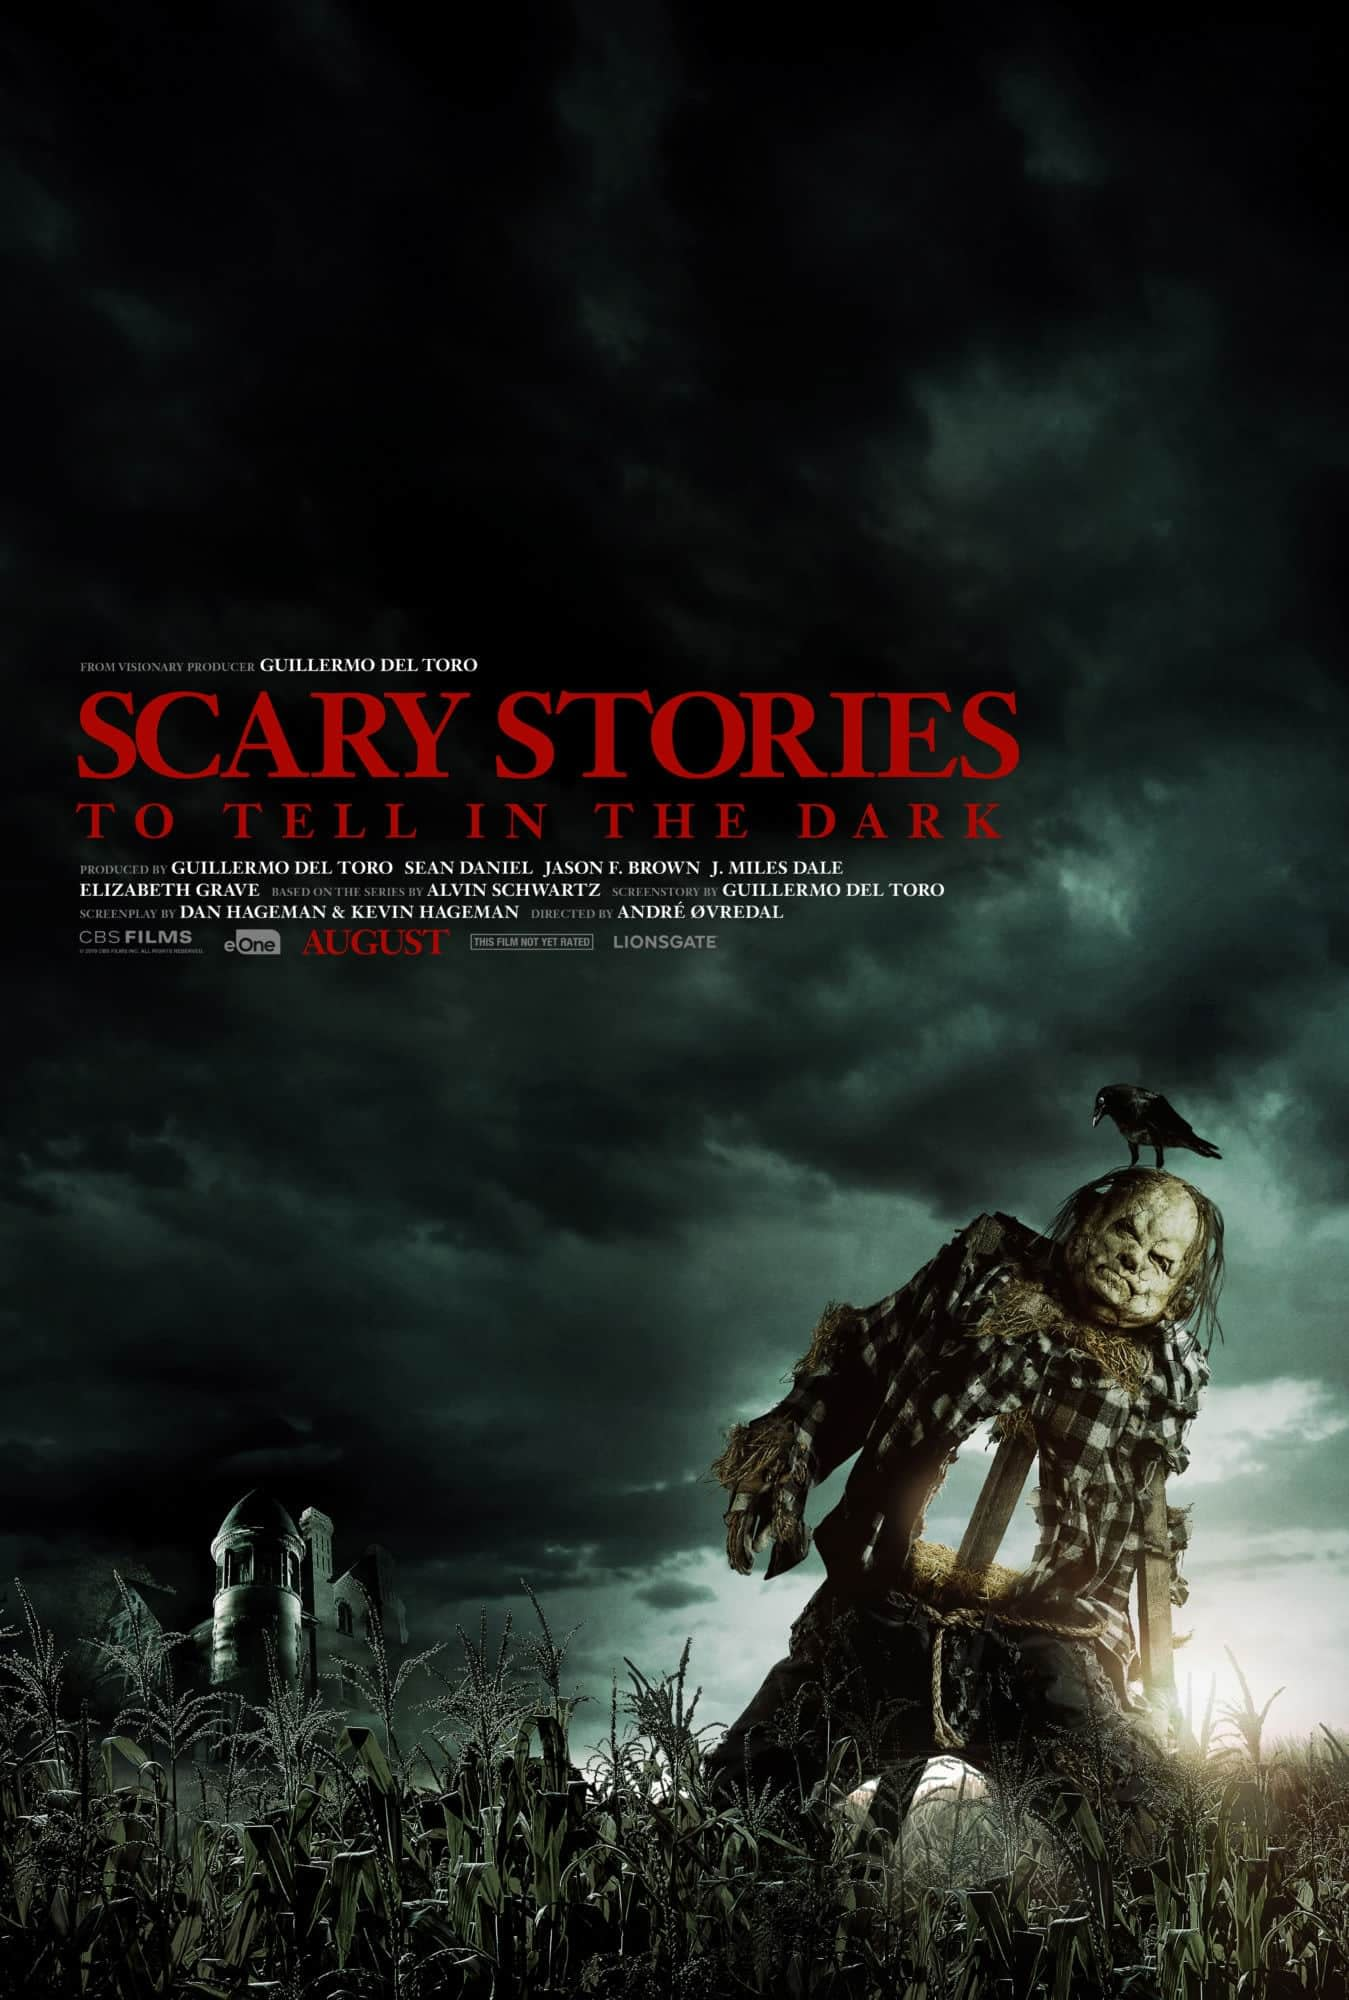 """Scary Stories"" Being Told by del Toro at San Diego Comic-Con"